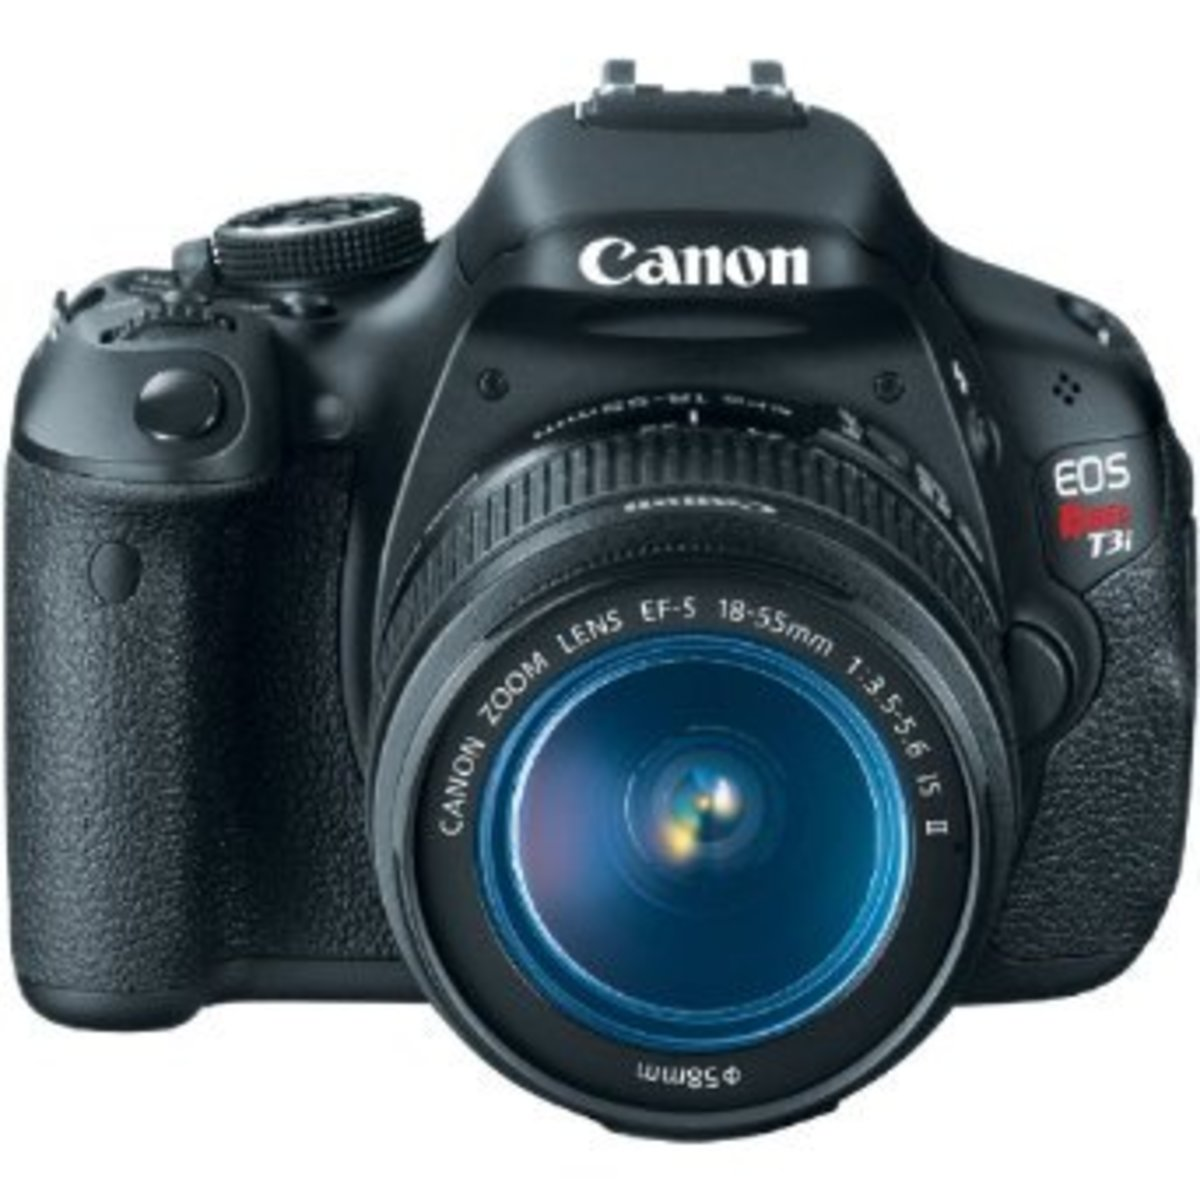 Best Beginner DSLR Camera for New Photographers or Videographers